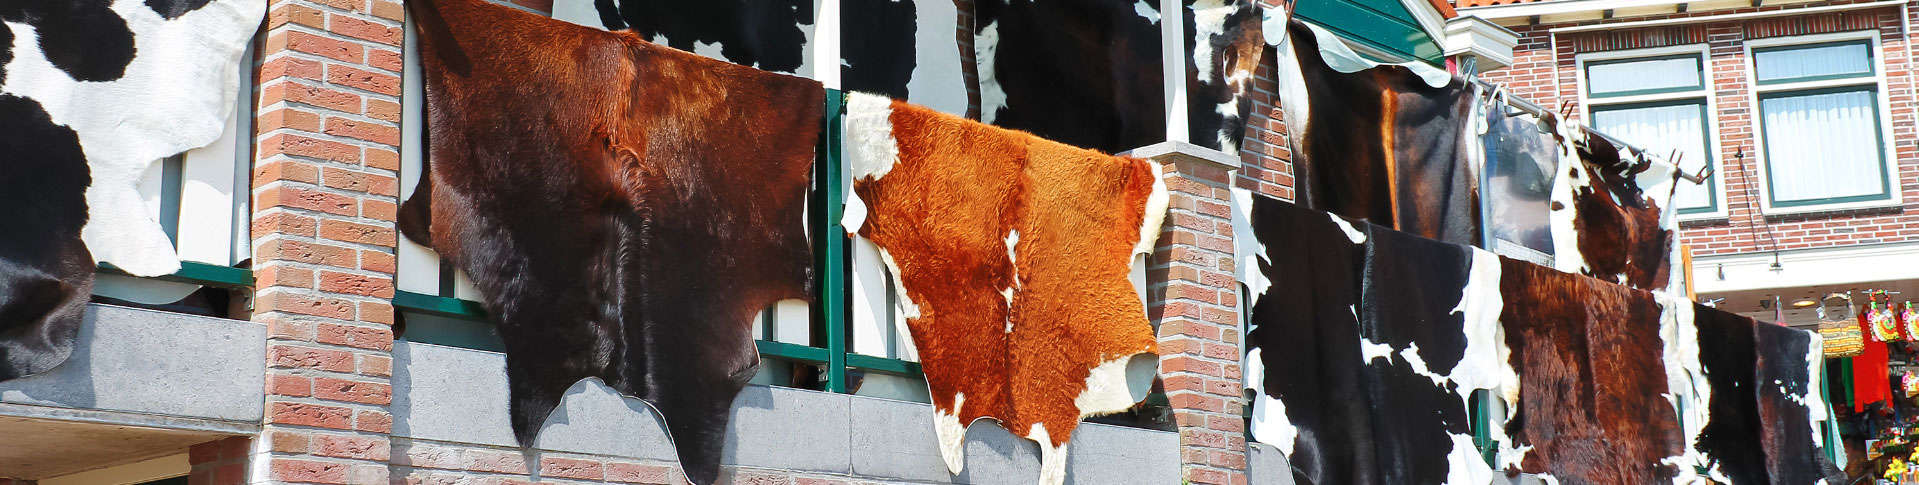 Cowhide Rug Pickup and Delivery